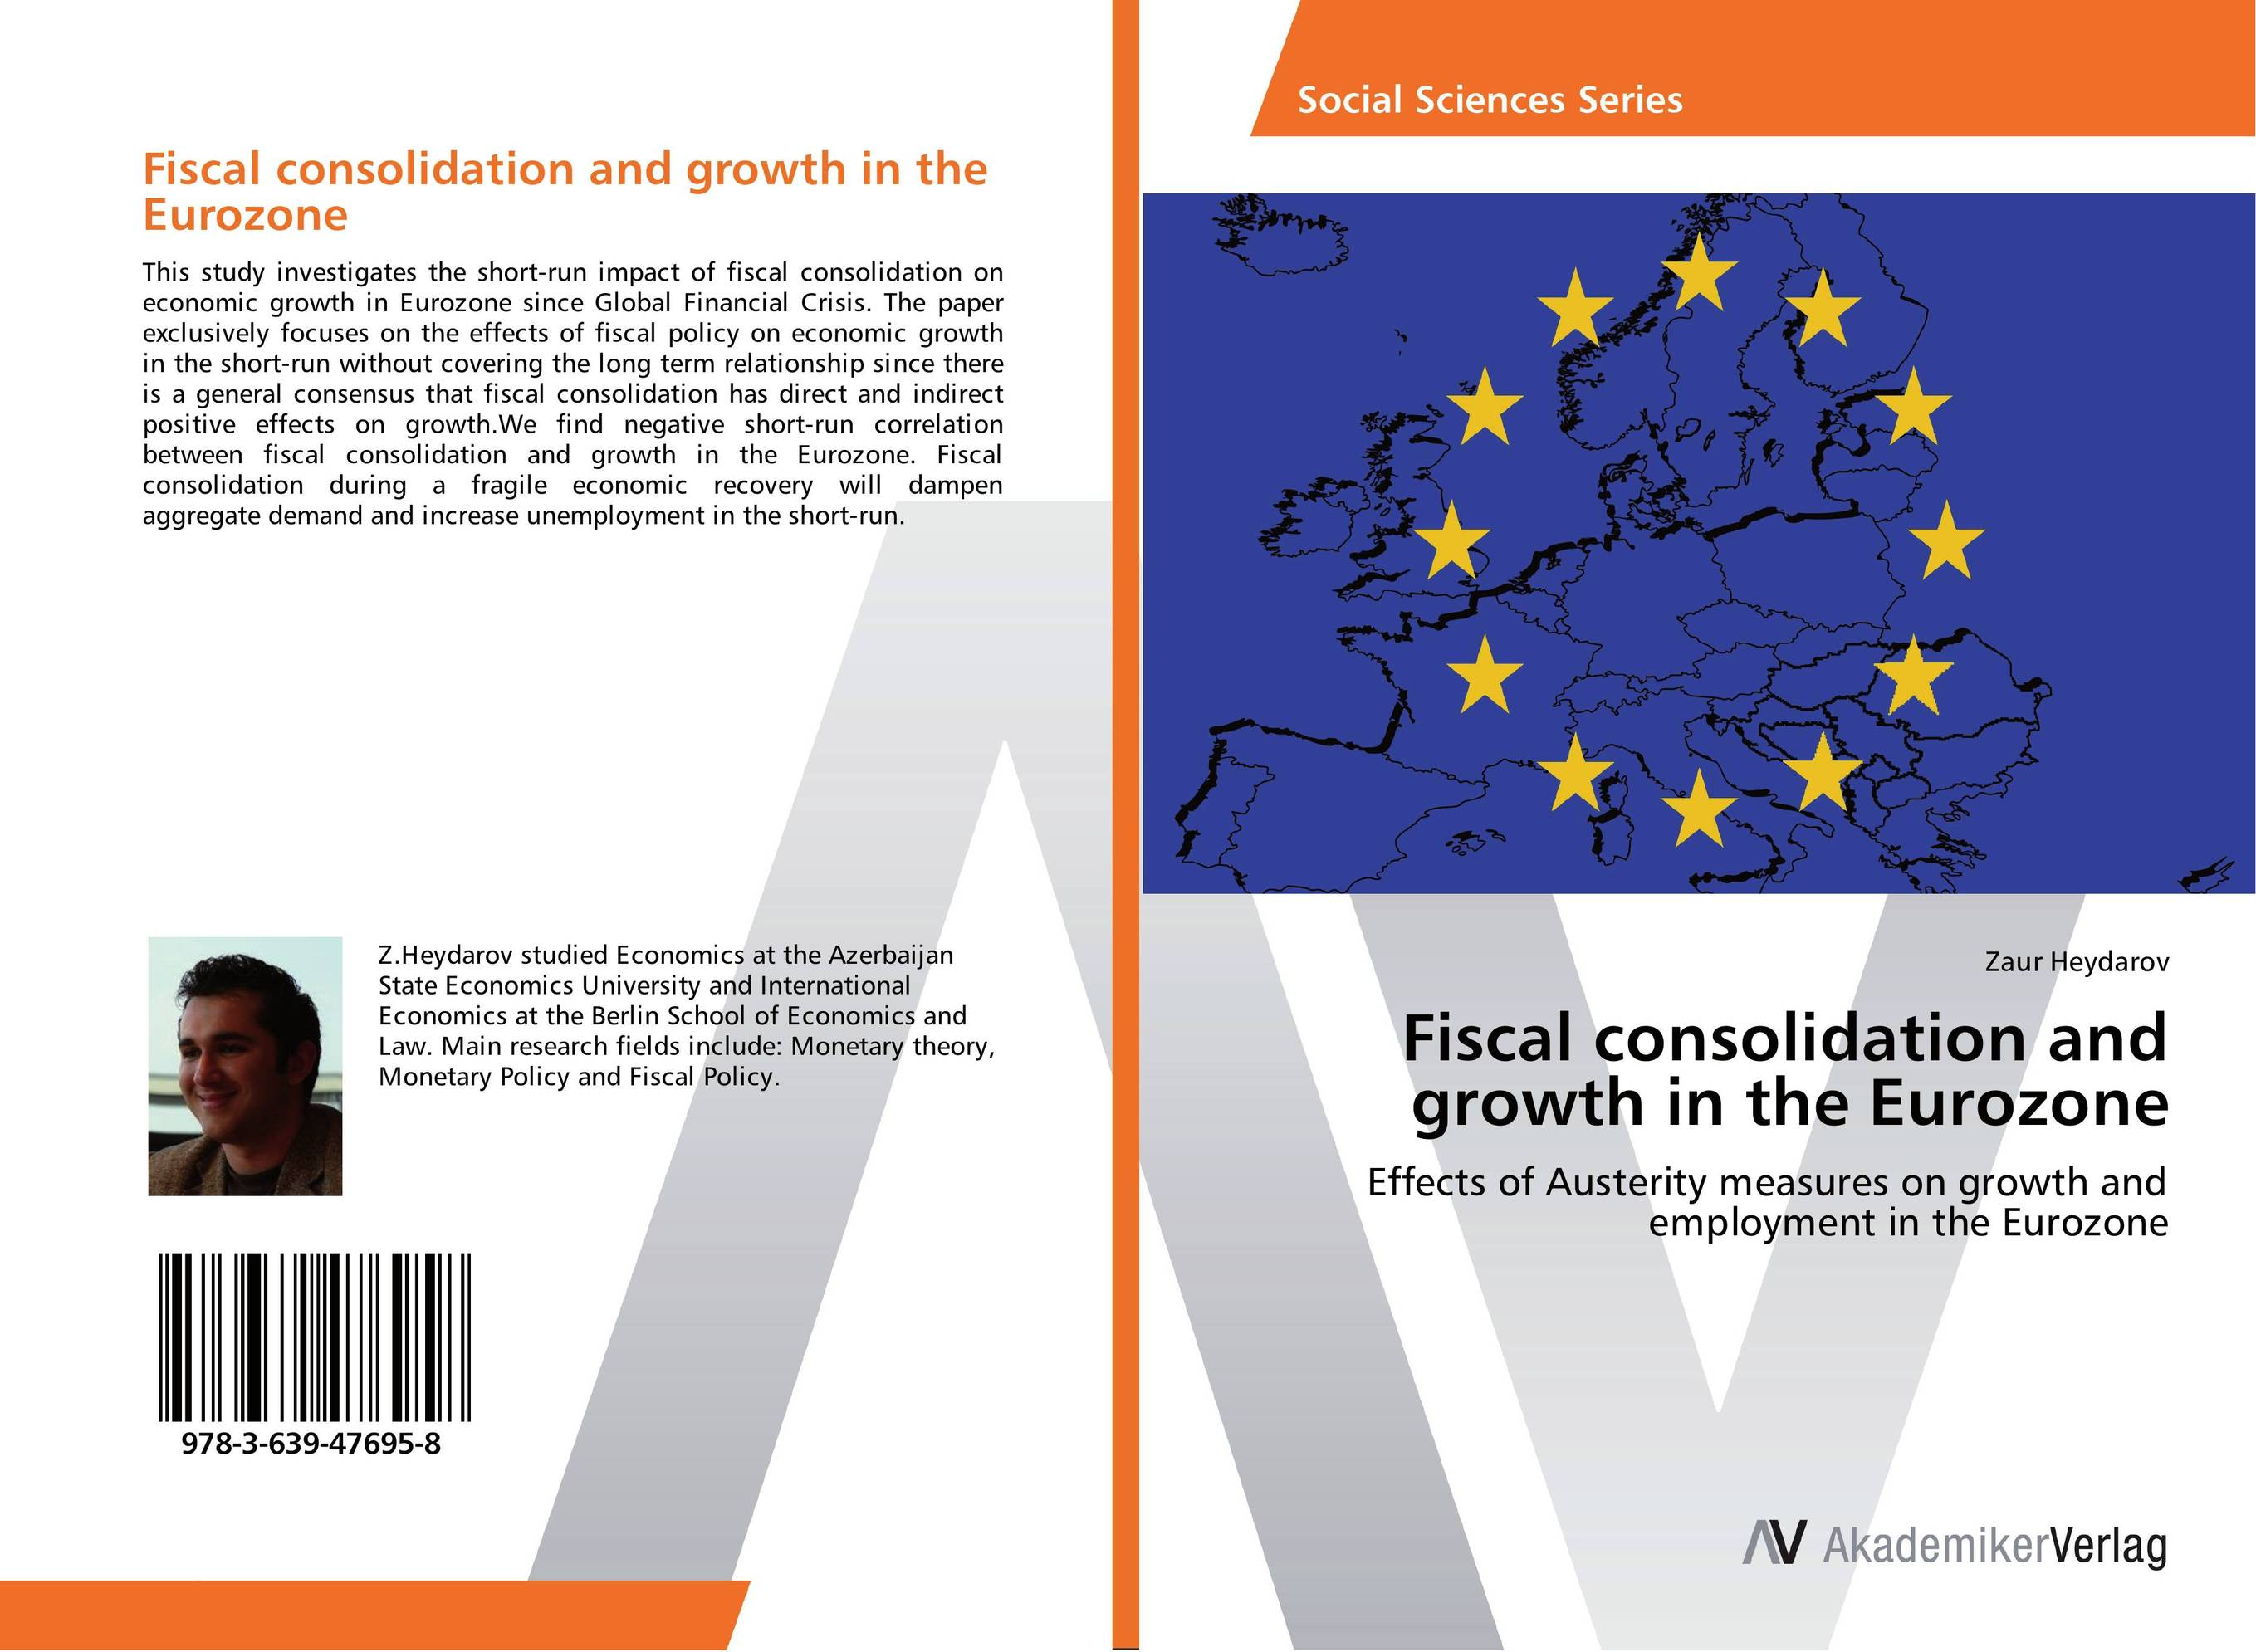 Fiscal consolidation and growth in the Eurozone julien macdonald топ